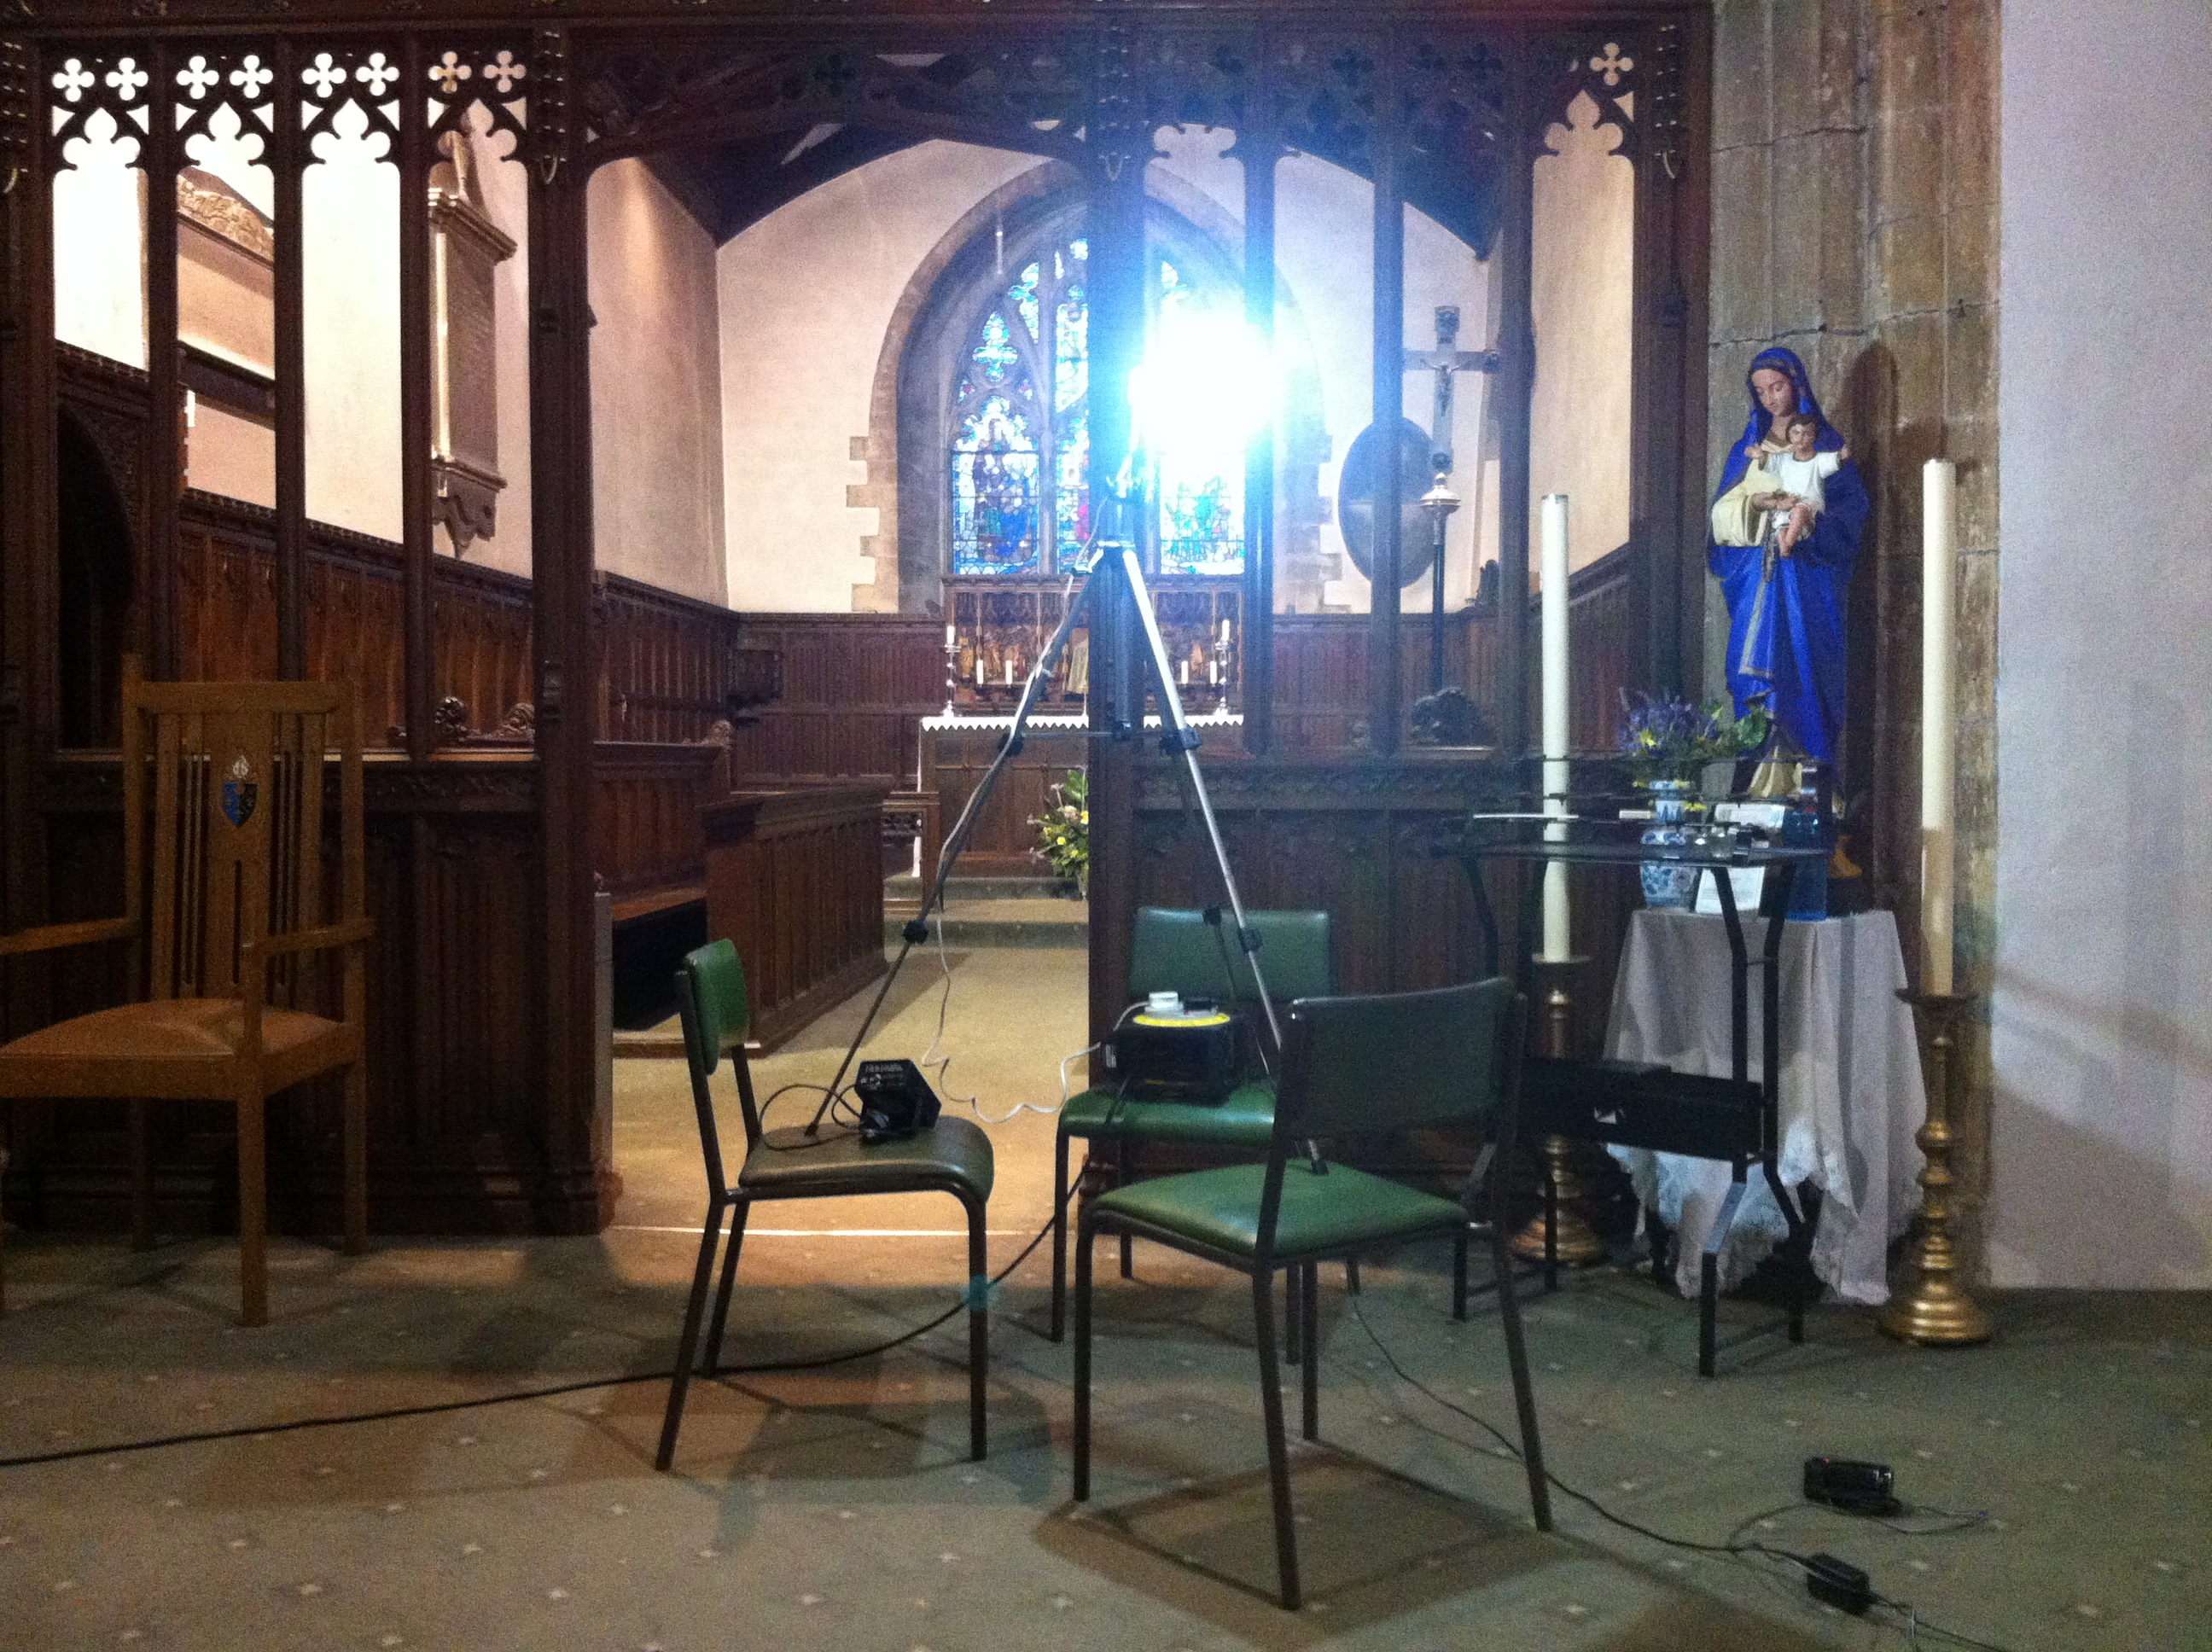 Filming on Location at a church in Cardiff